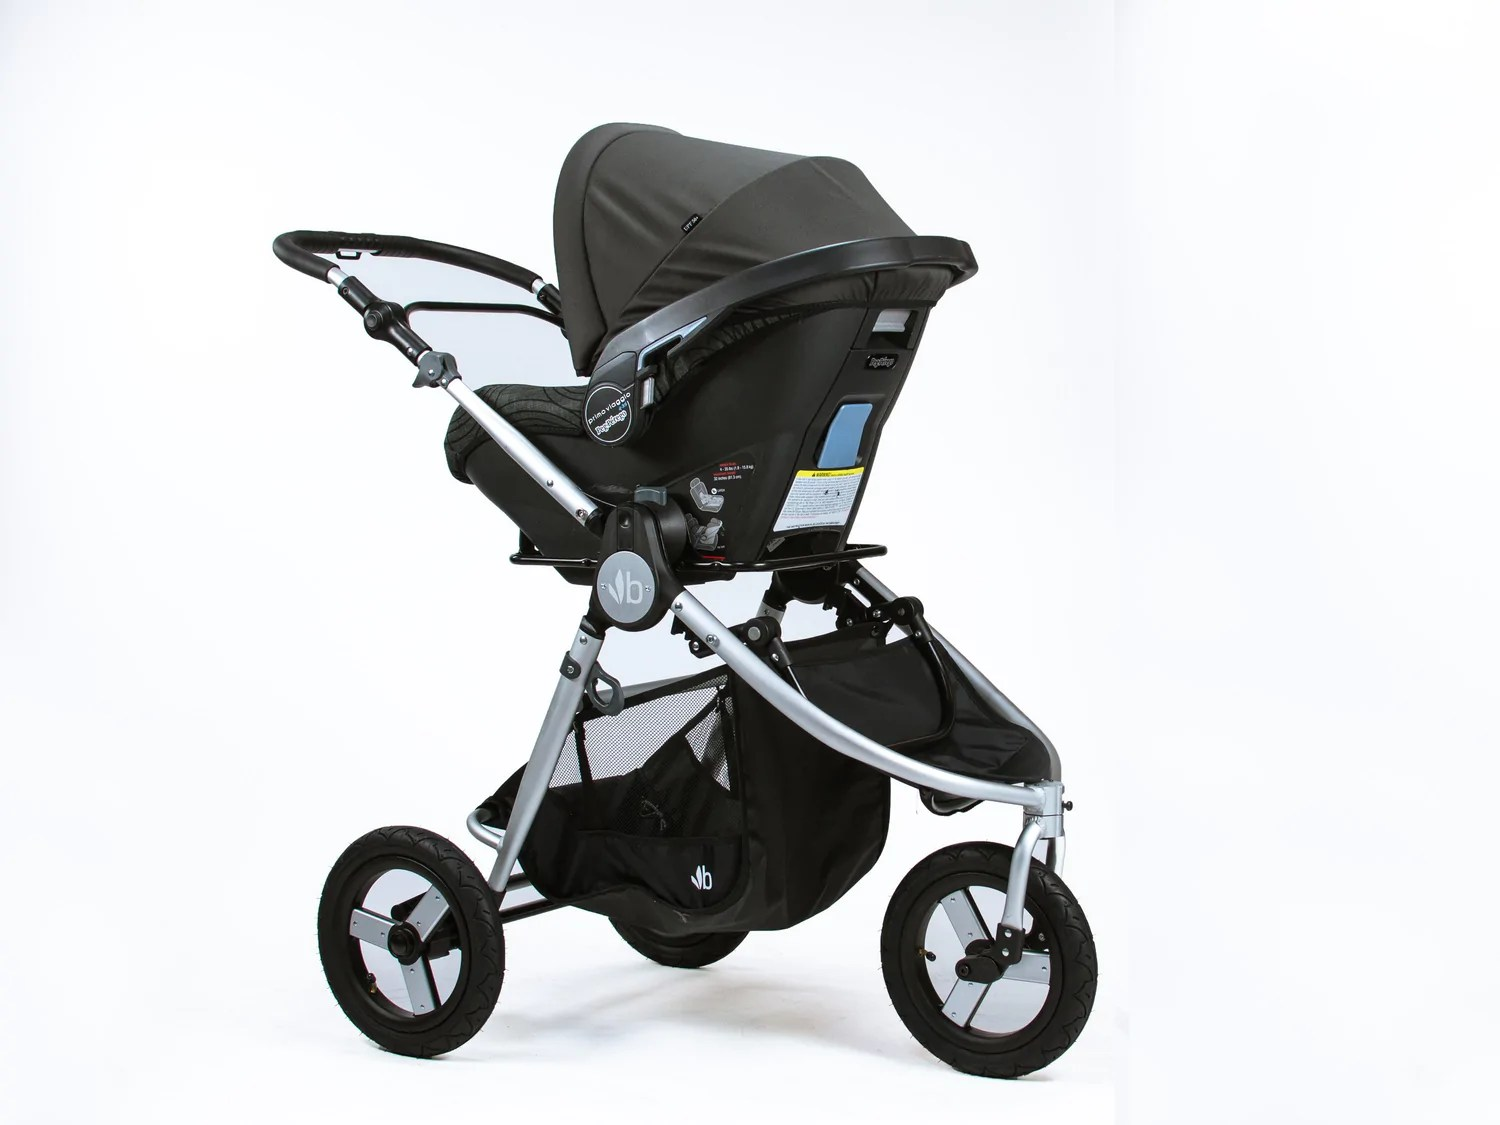 Peg Perego Stroller For Twins Single Stroller Car Seat Adapter Peg Perego